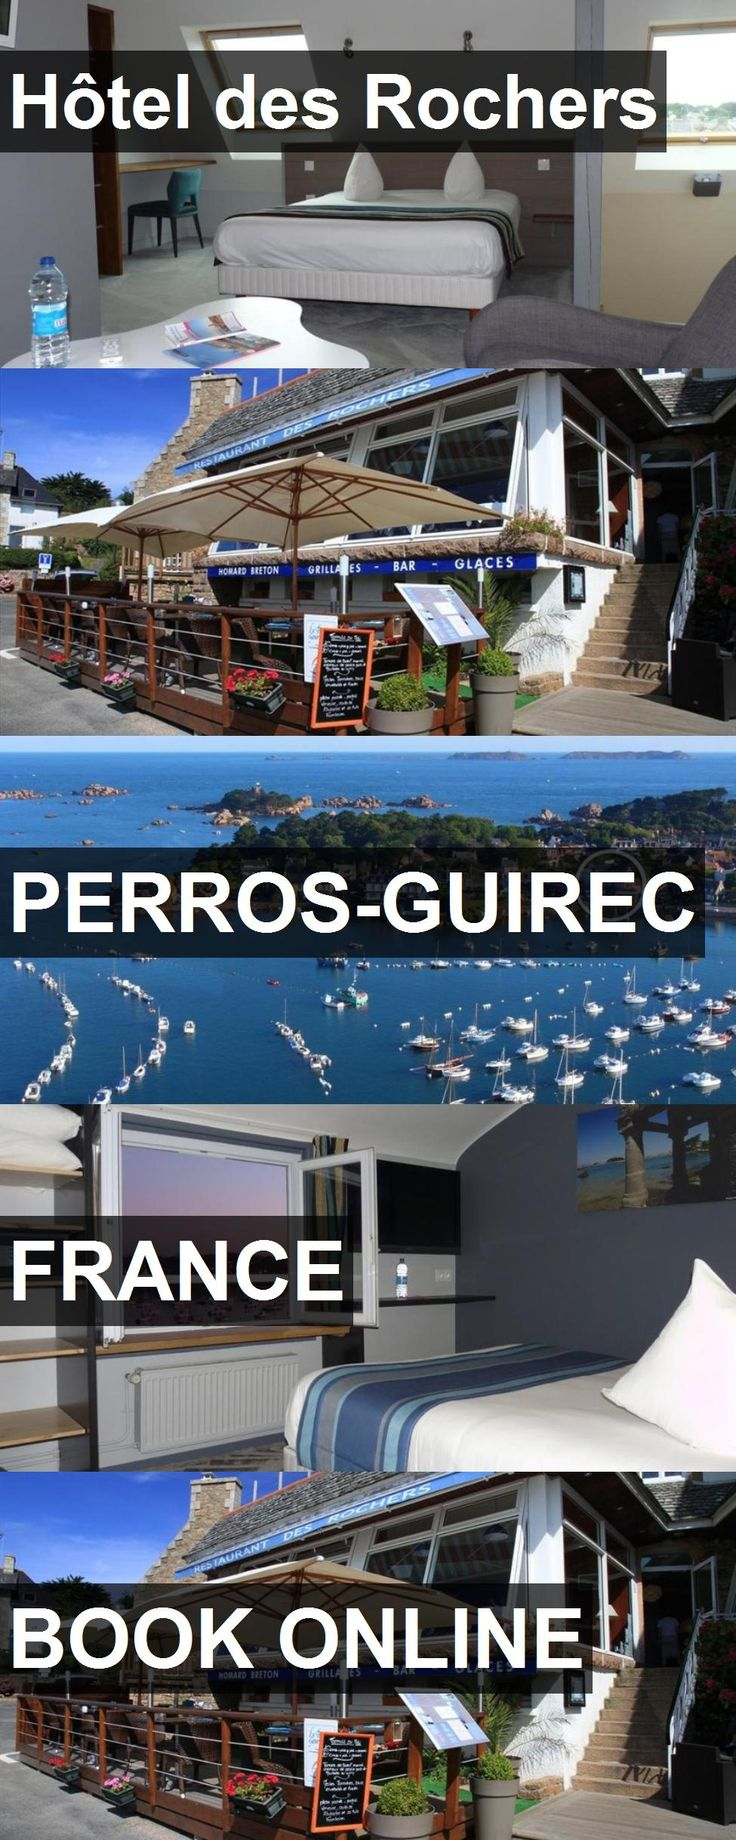 Hotel Hôtel des Rochers in Perros-Guirec, France. For more information, photos, reviews and best prices please follow the link. #France #Perros-Guirec #travel #vacation #hotel